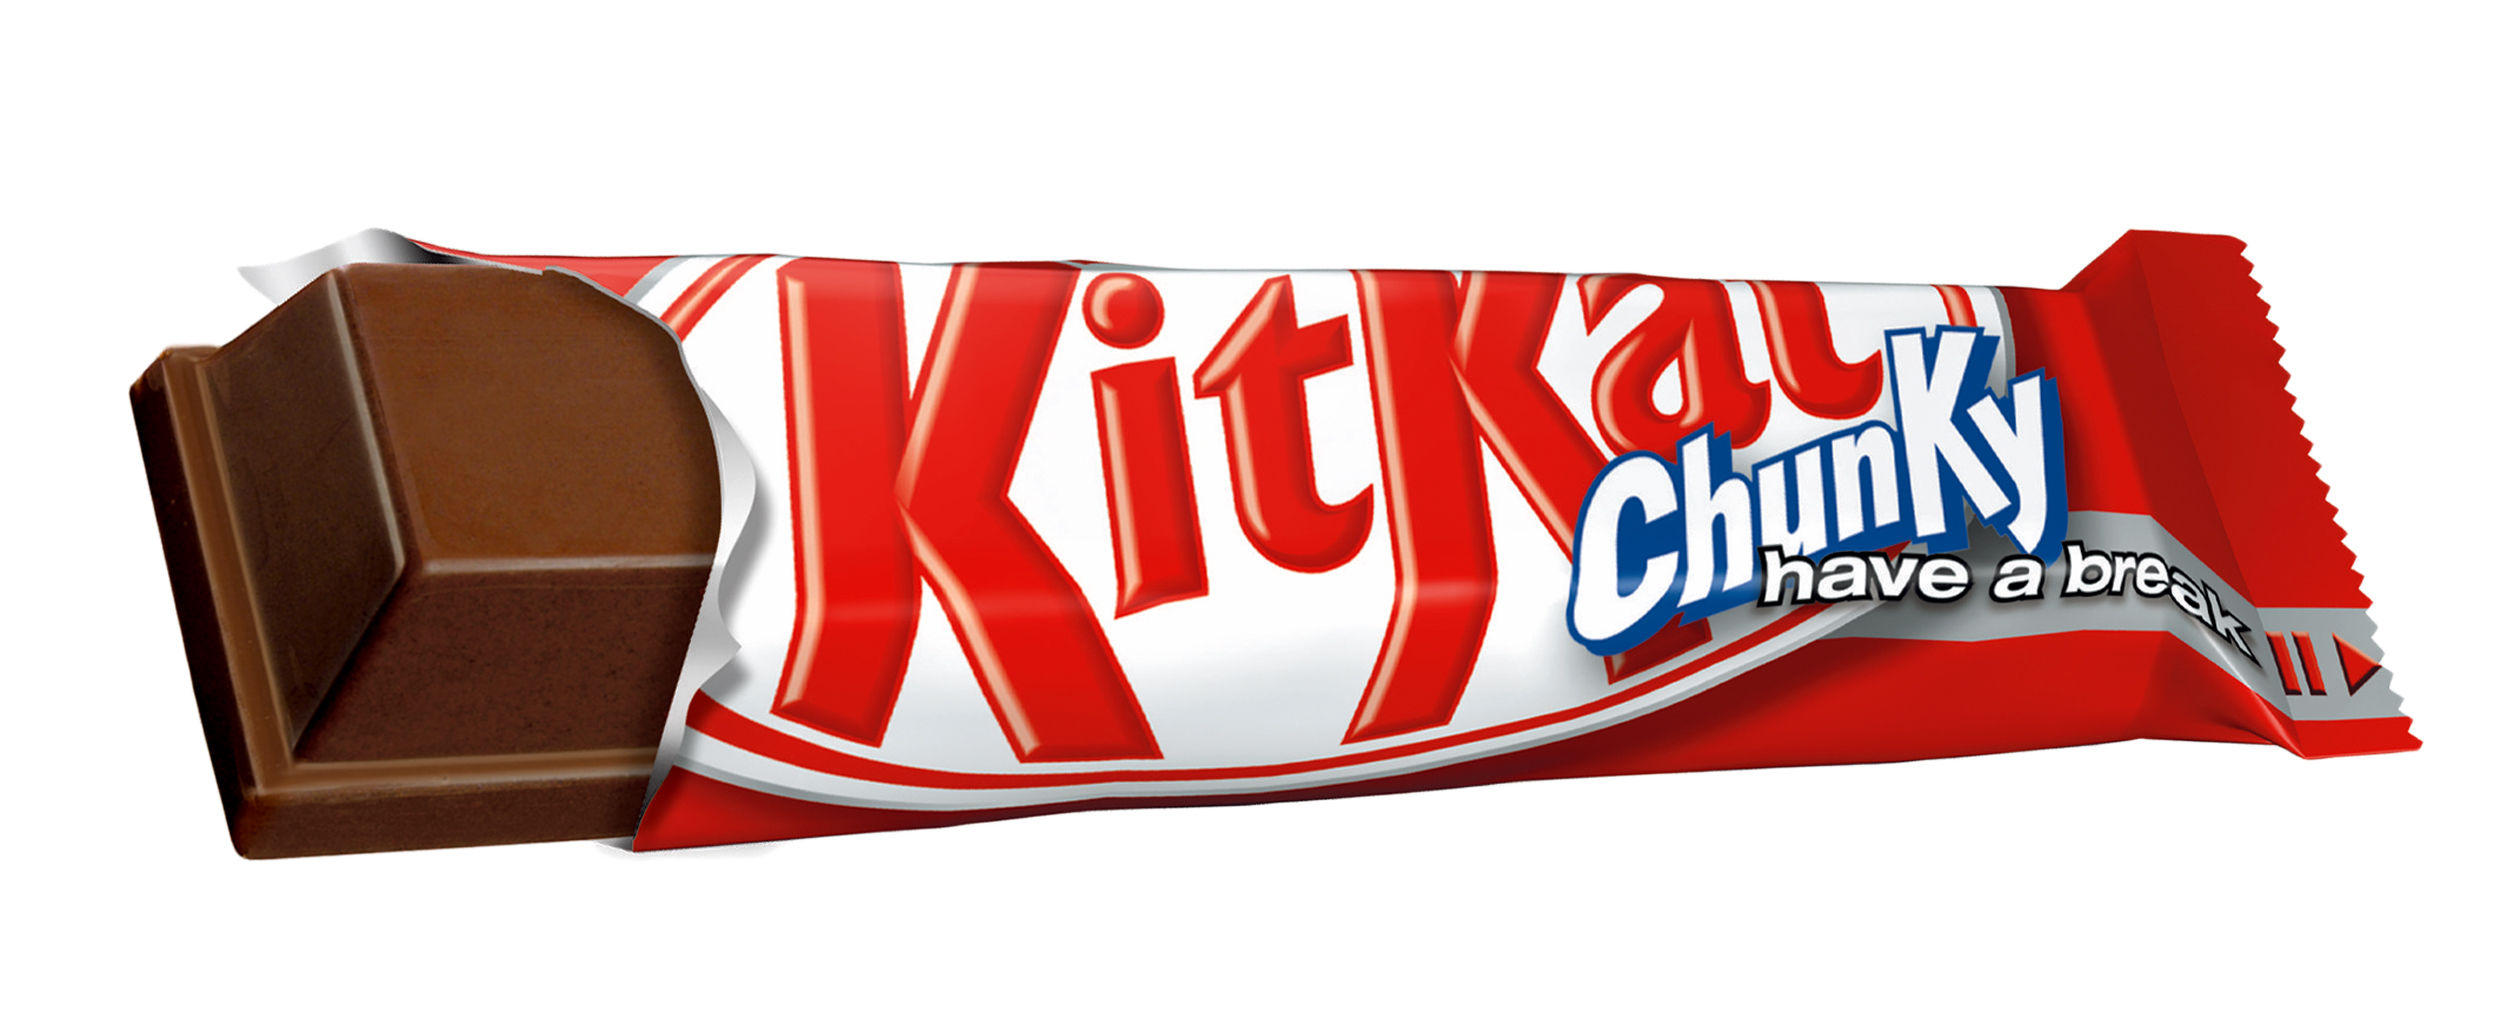 Technology Management Image: KitKat: First Chocolate To Use Sustainably Sourced Cocoa